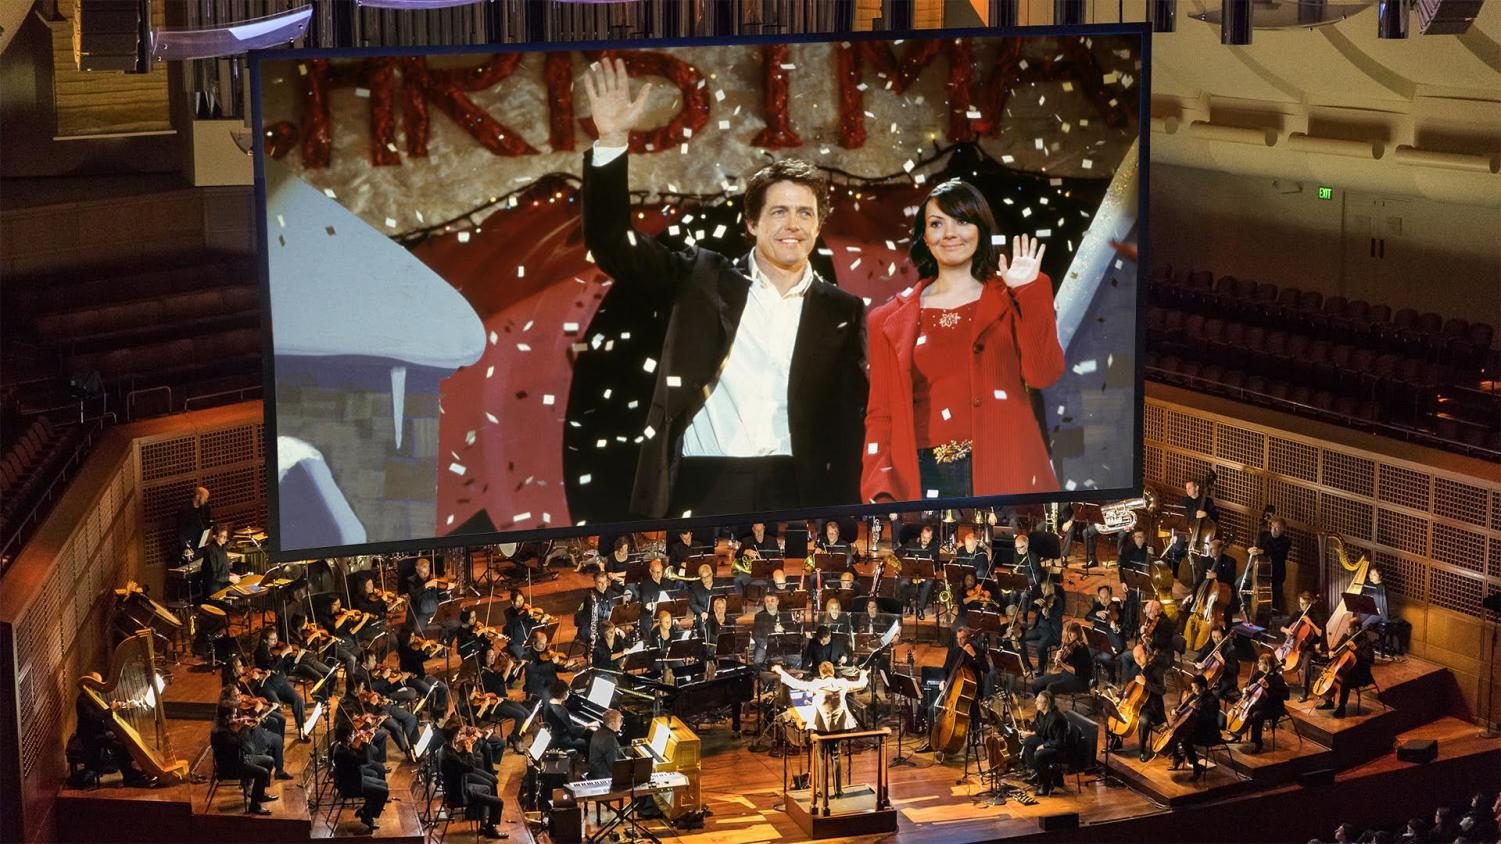 The San Francisco Symphony plays the soundtrack along to the film of